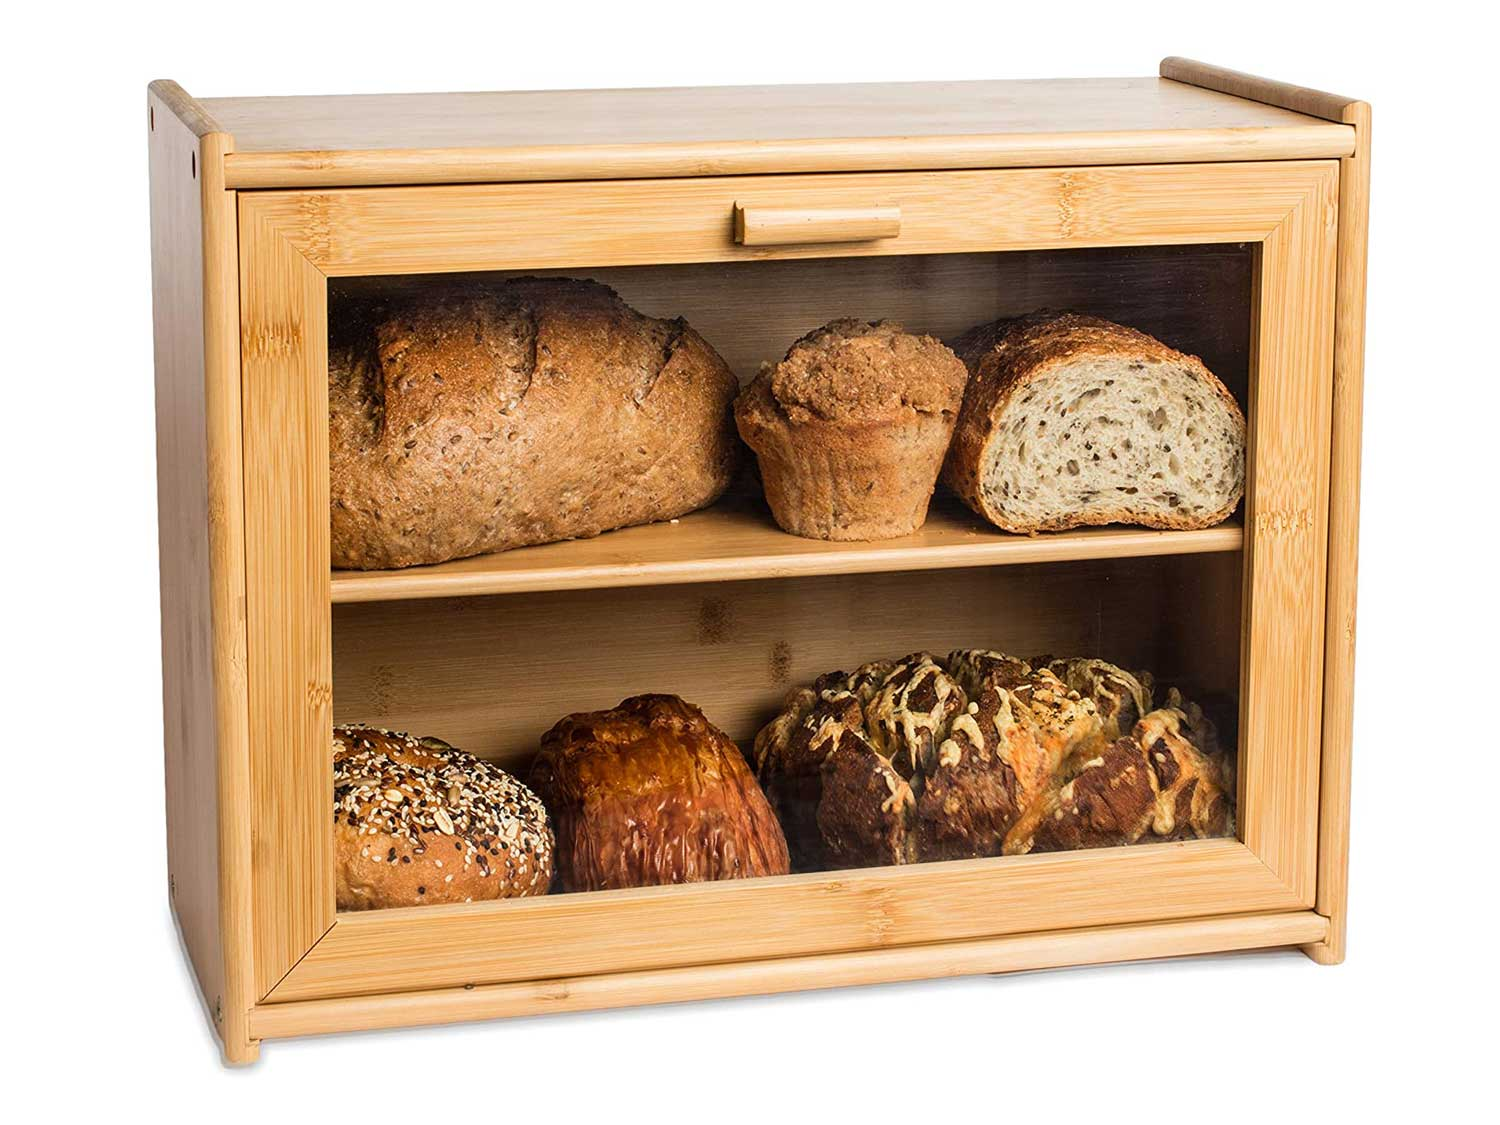 LAURA'S GREEN KITCHEN Large Double Layer Bread Box: Bamboo BreadBox w/Clear Window-Farmhouse Style Bread Holder for Kitchen Countertop - Rustic Bread Storage Bin Holds 2 Loaves (Self-Assembly)